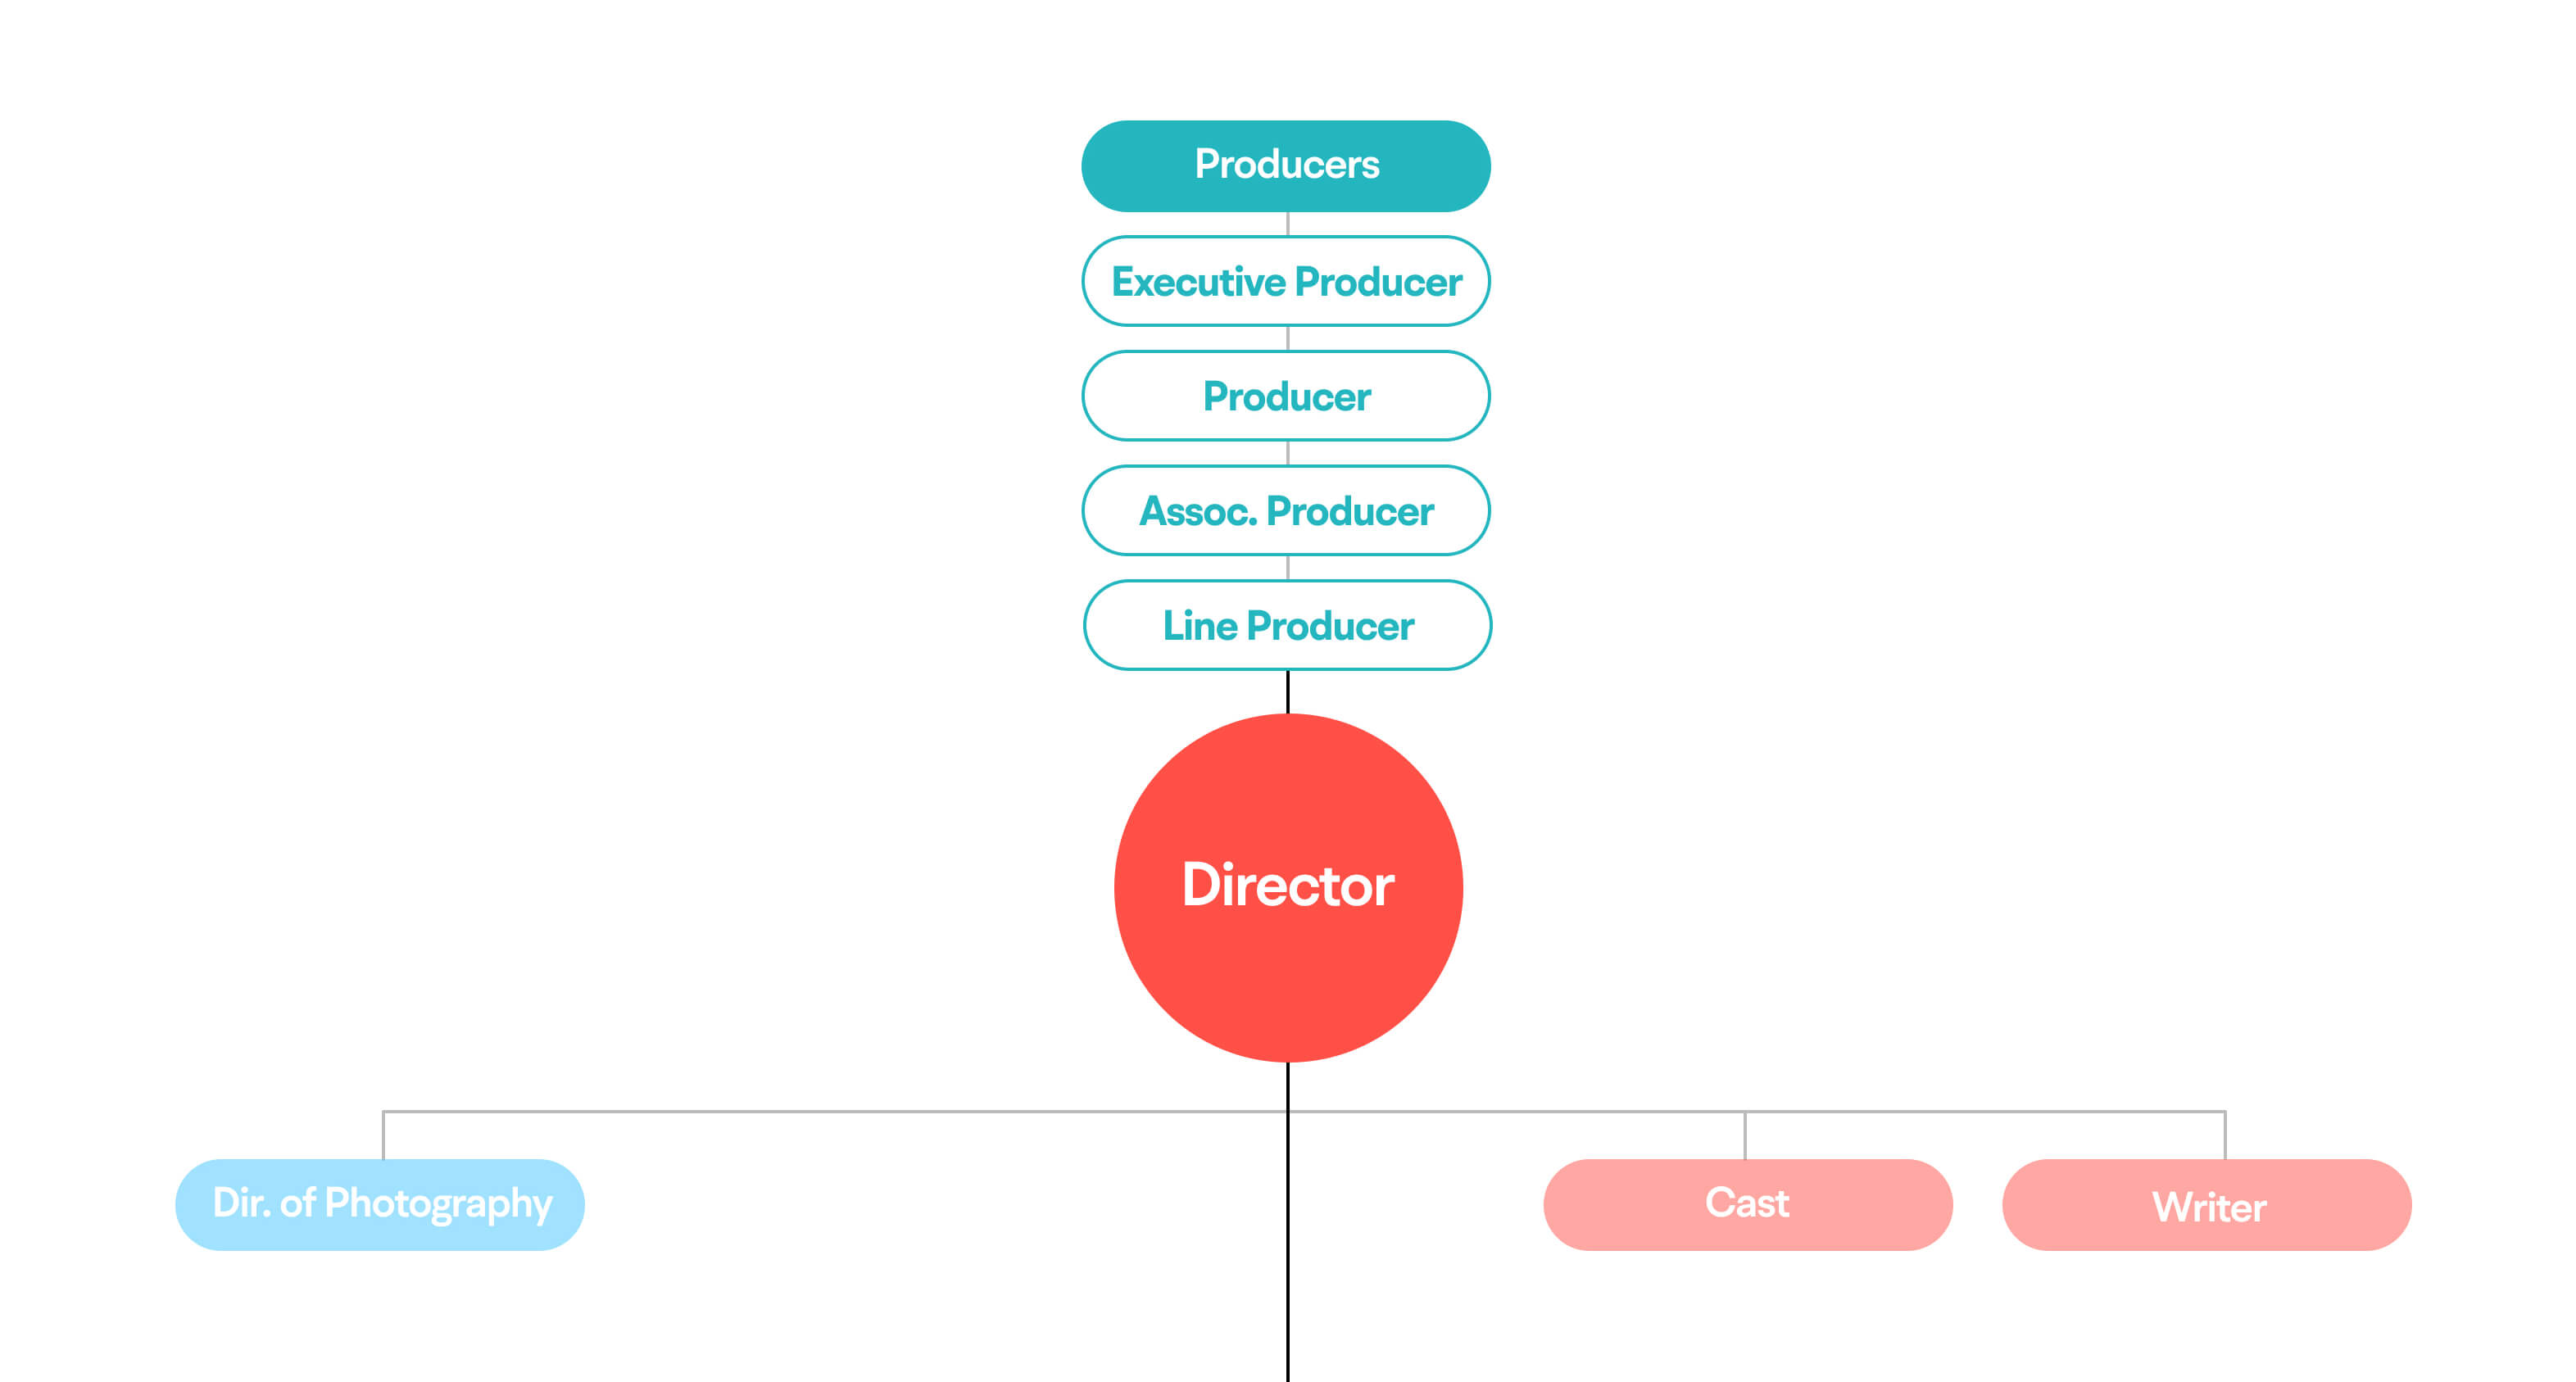 Where an associate producer fits in the film crew heirarchy